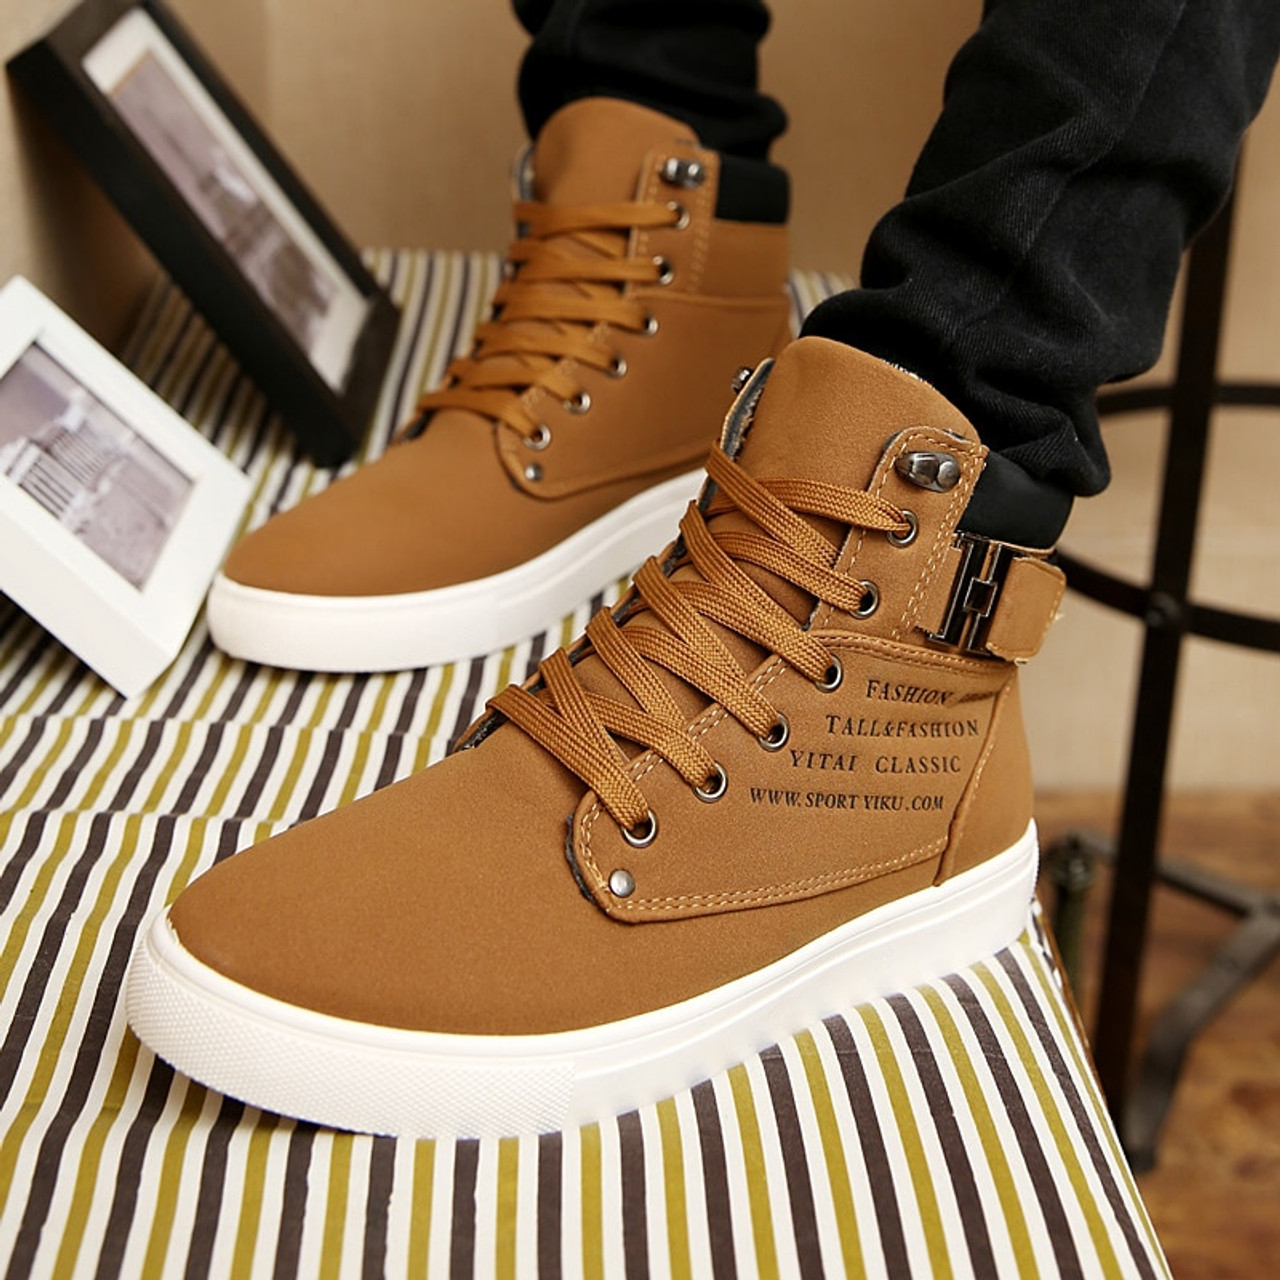 69c33bb445b80 ... 2018 Hot Men Boots Fashion Warm Winter Men shoes Autumn Leather Footwear  For Man New High ...